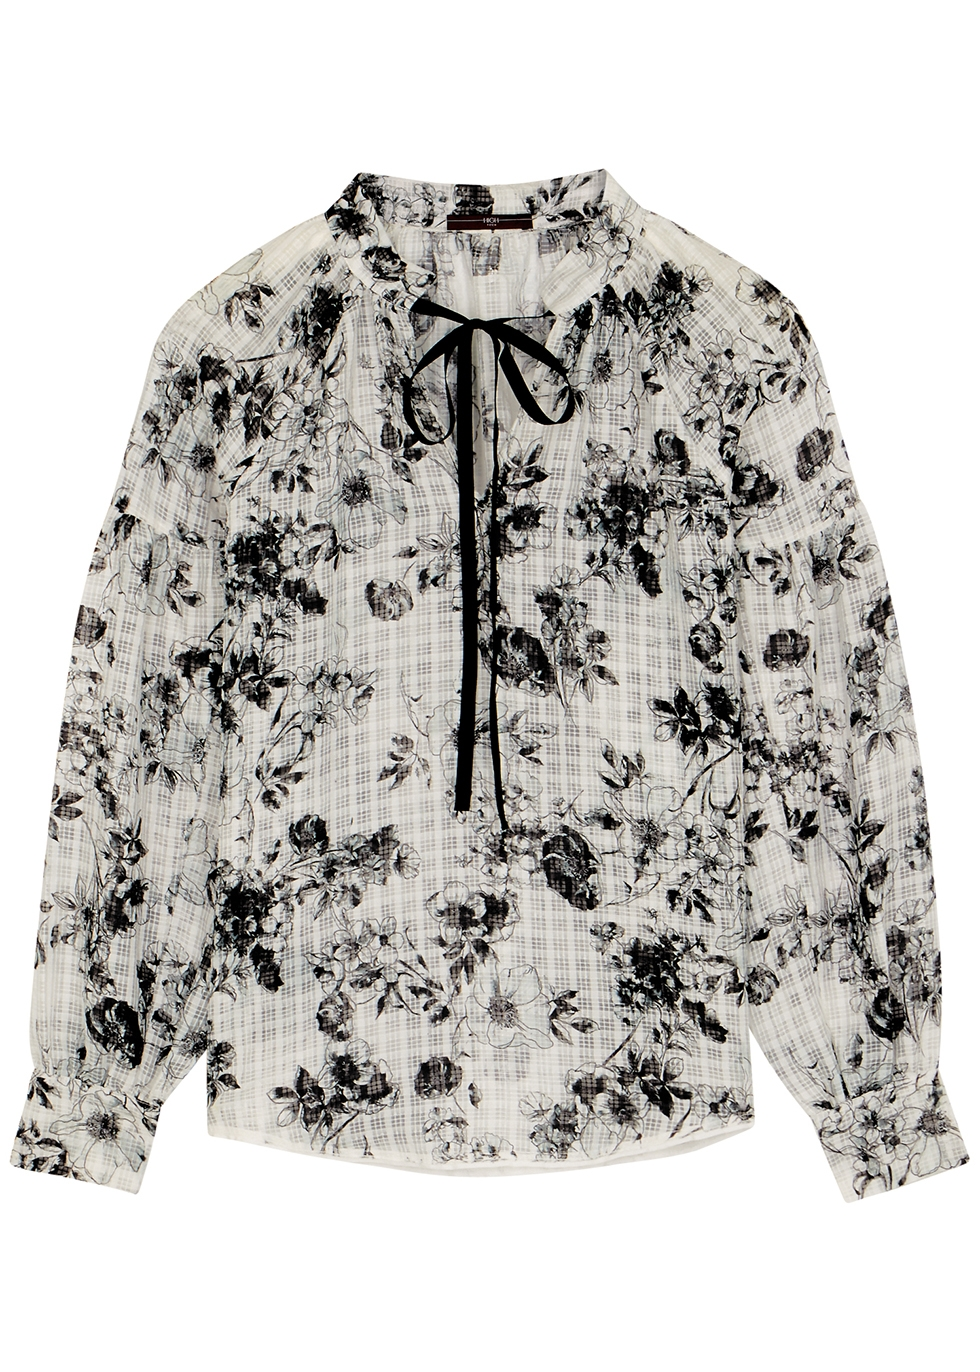 Perception floral-print organza blouse